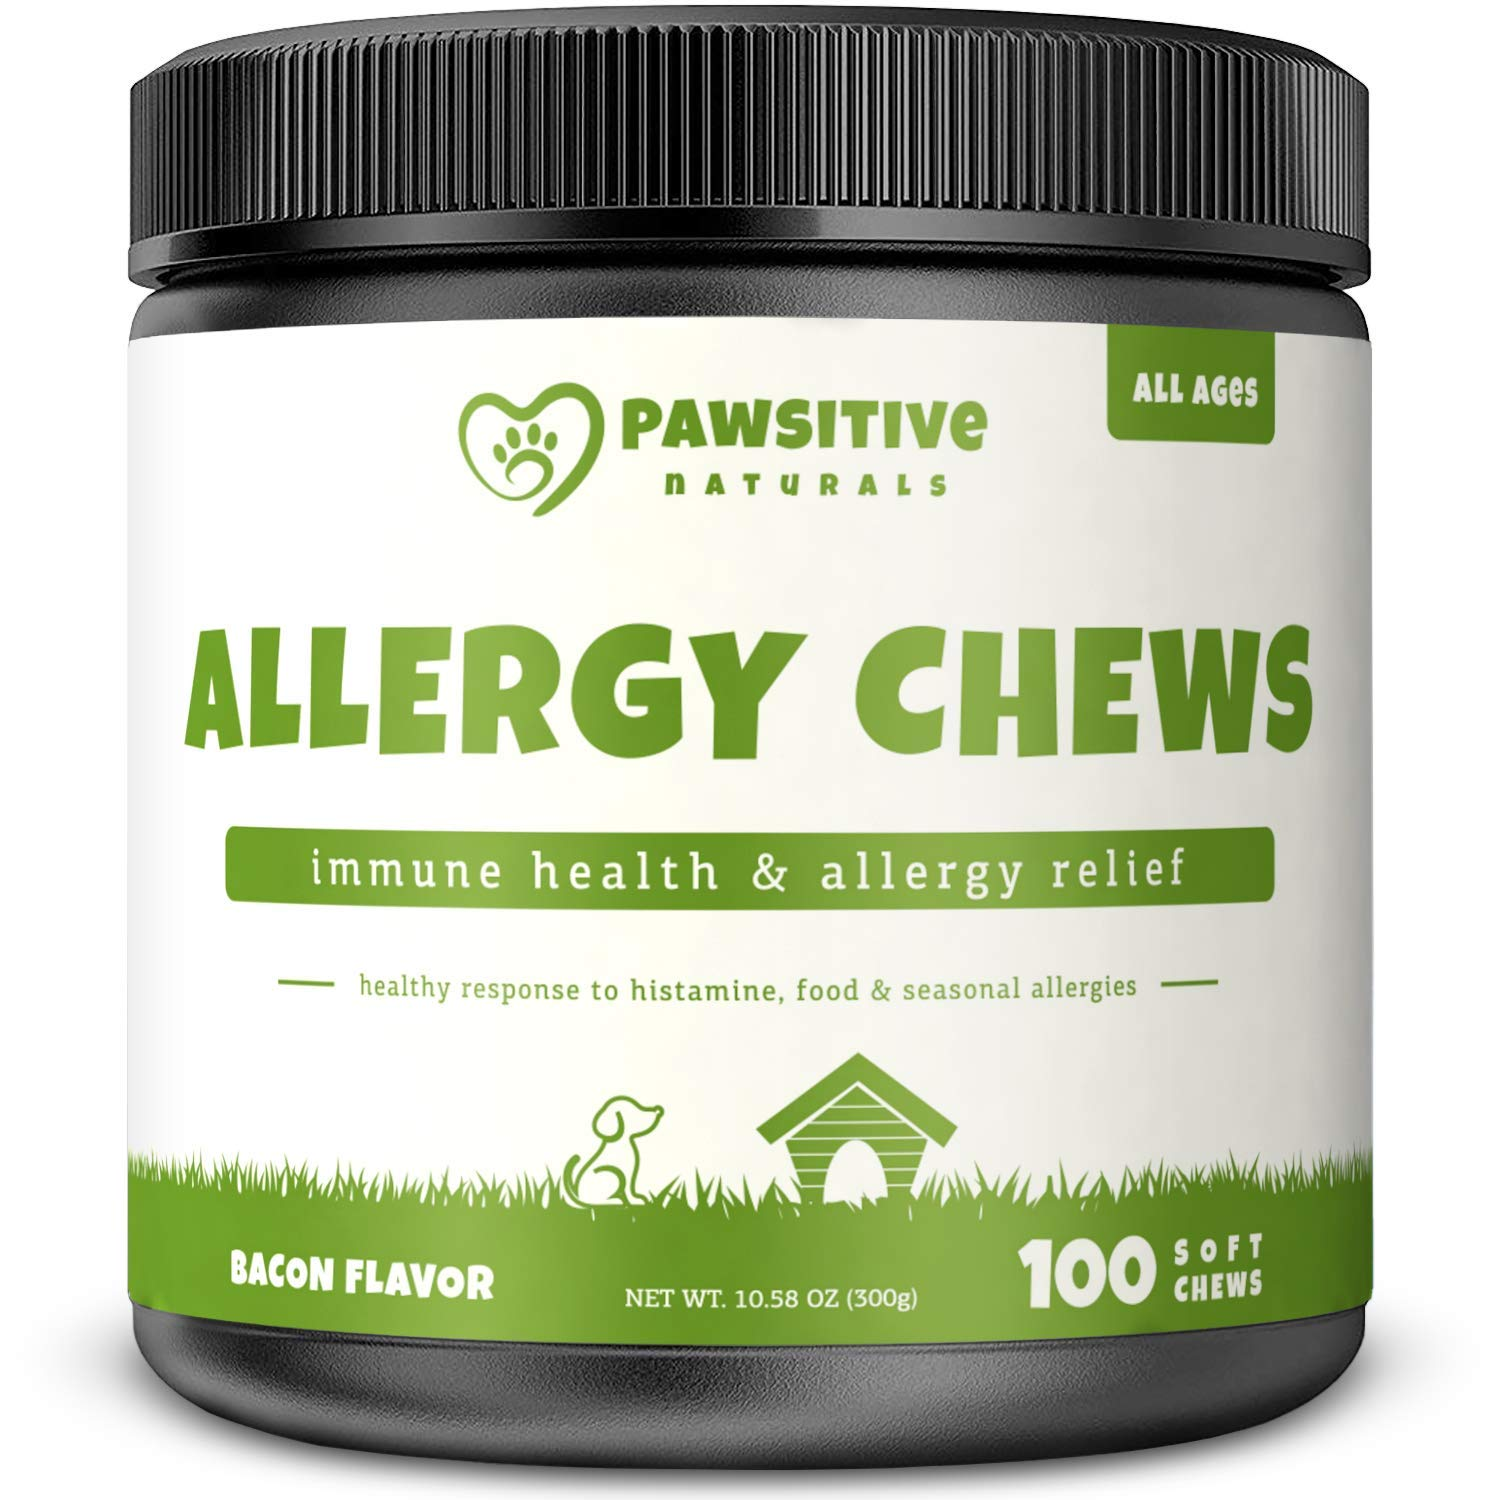 Allergy Immune Supplement for Dogs - 100 Soft Chew Bites - Omega 3 Salmon Fish Oil, Colostrum, Digestive Prebiotics & Probiotics for Seasonal Allergies, Immunity, Anti Itch & Skin Hot Spots by Pawsitive Naturals